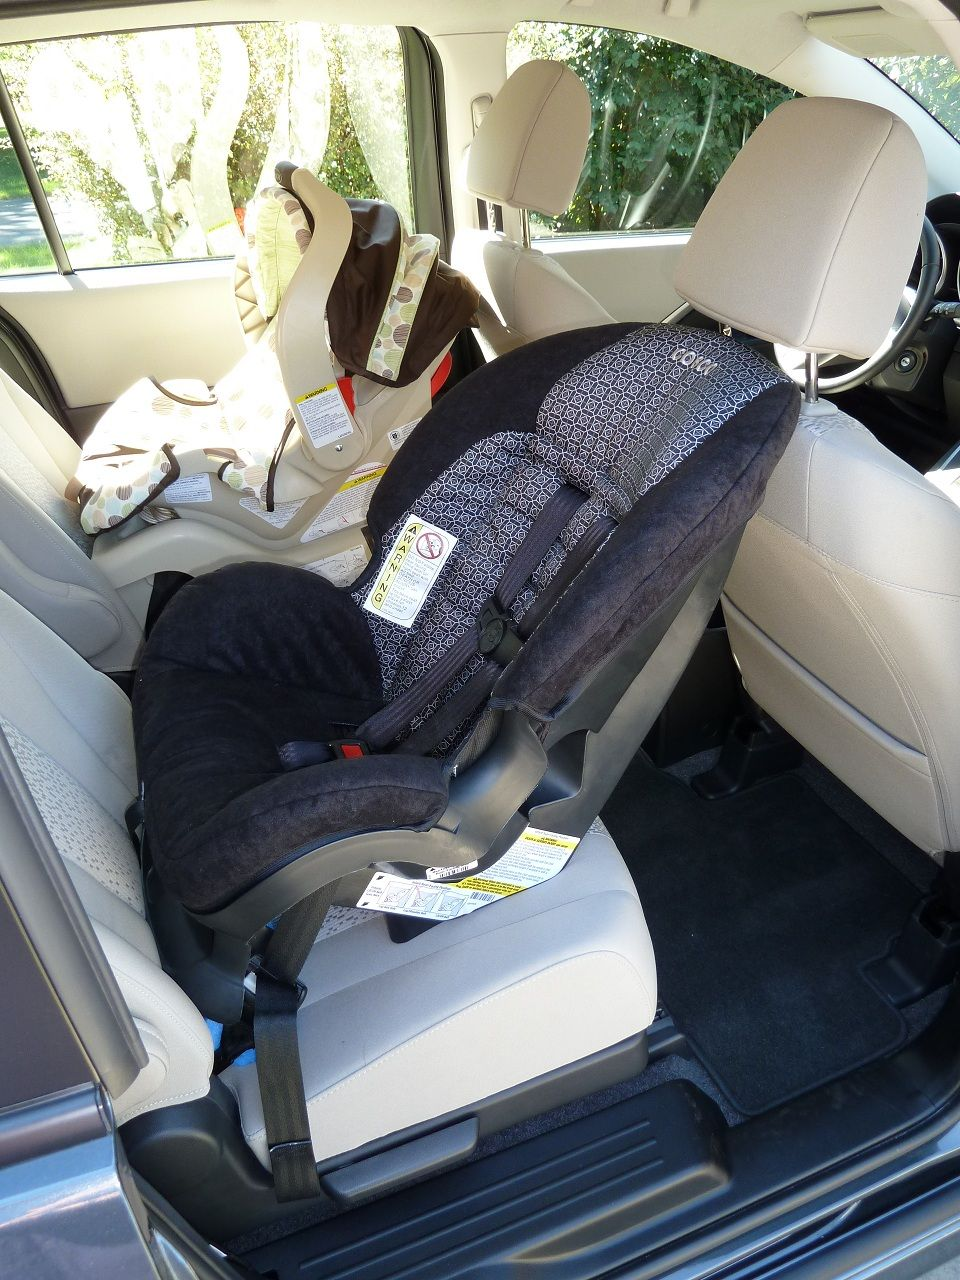 4ba9a3751a0 Mazda5 - Putting the Mini back in Minivan. CarseatBlog  The Most Trusted  Source for